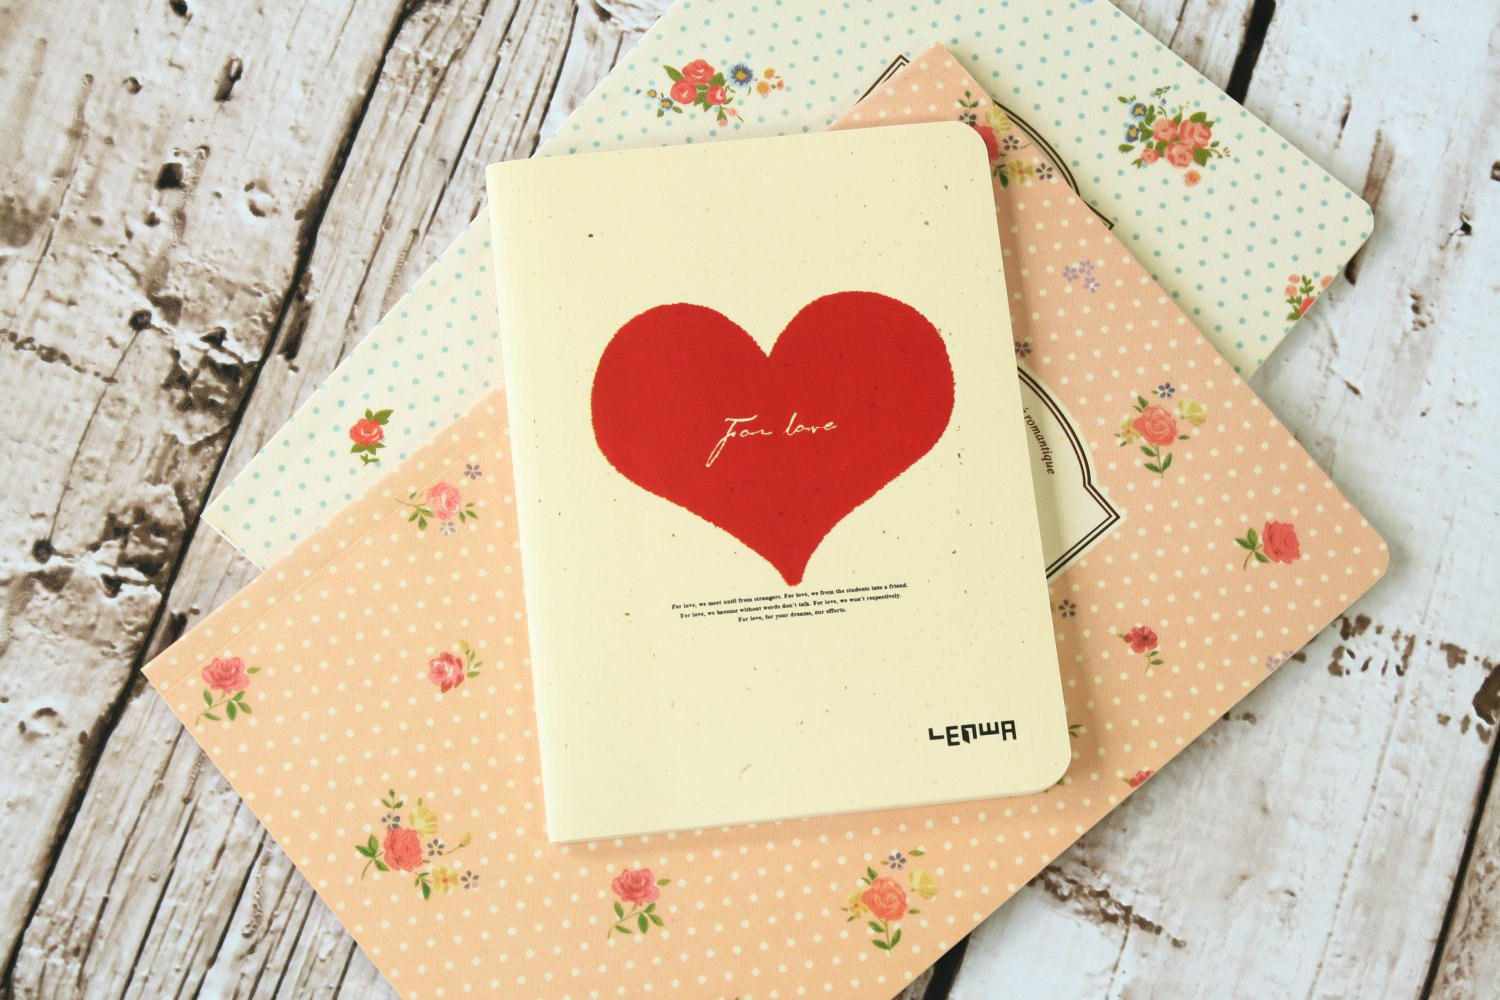 Red Heart For Love cute notebook